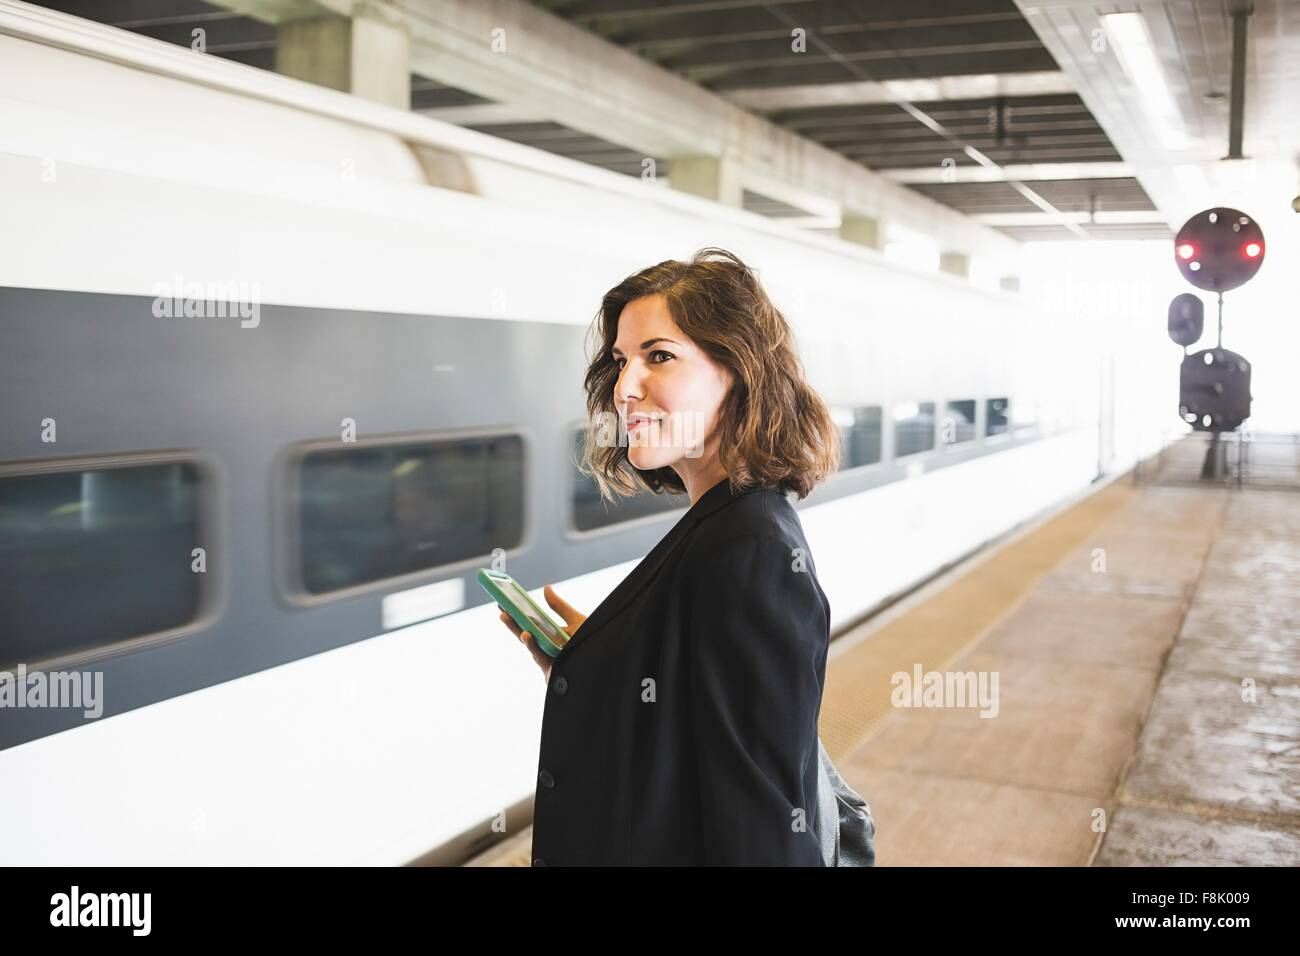 Mid adult woman en attendant l'embarquement, la holding smartphone Photo Stock